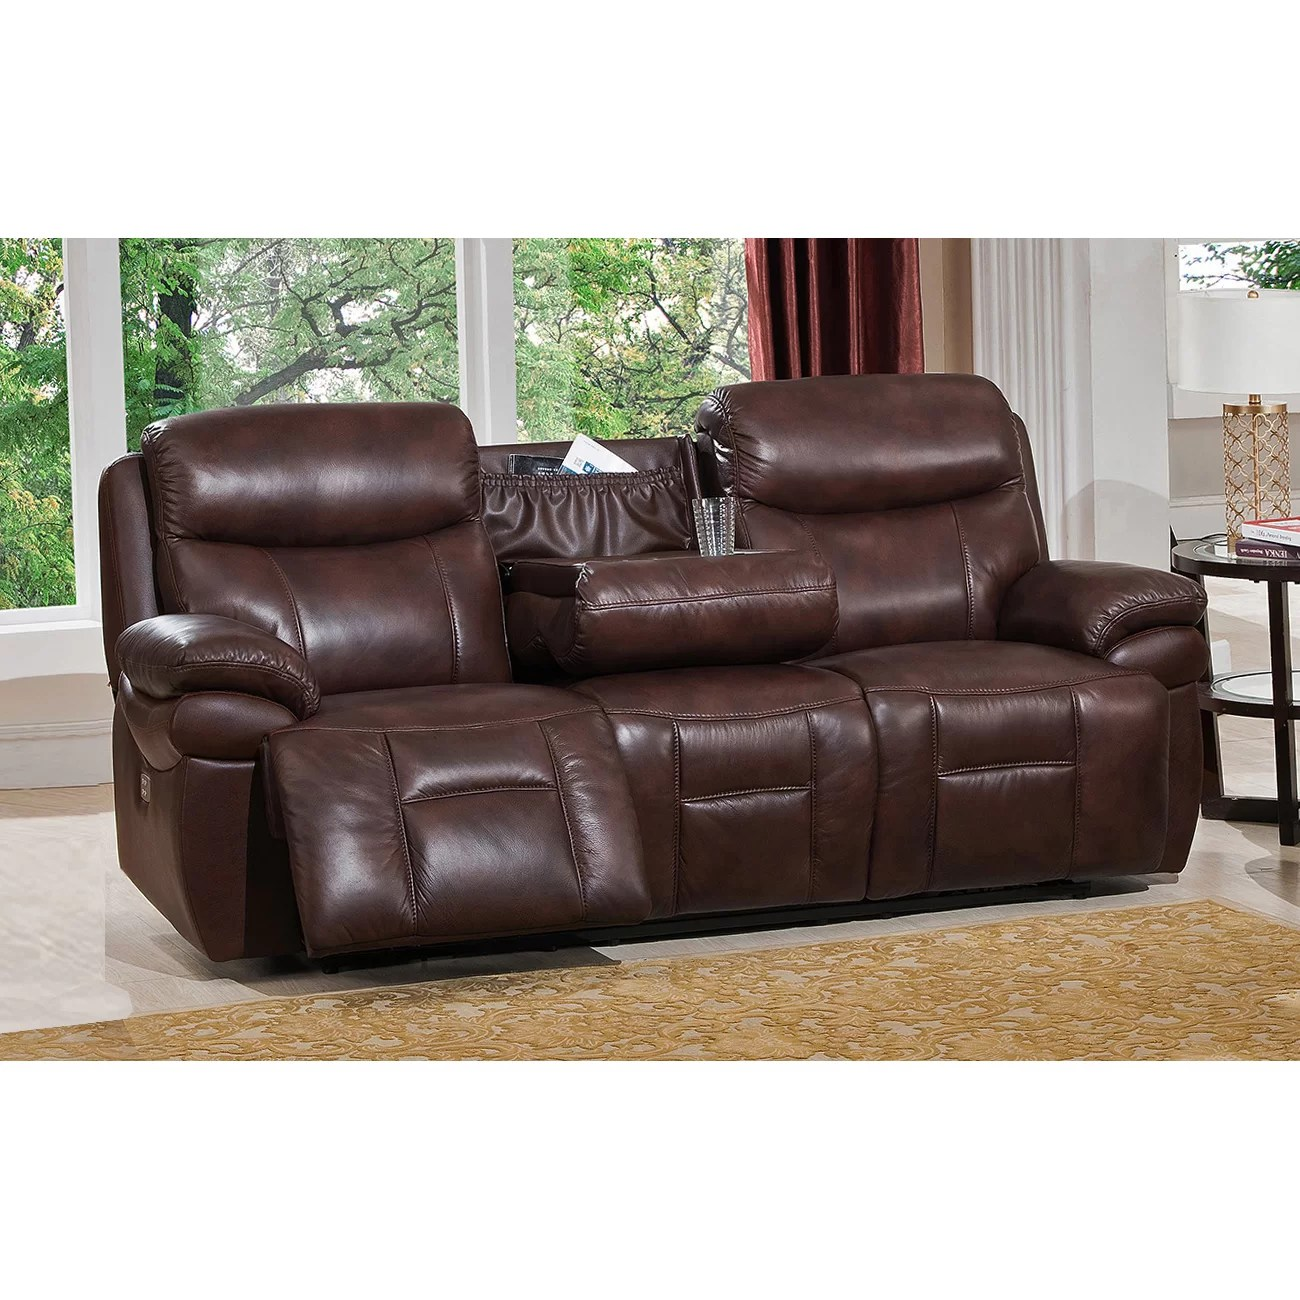 futura leather and vinyl power reclining sofa with headrest in stone big sofas uk living room sets